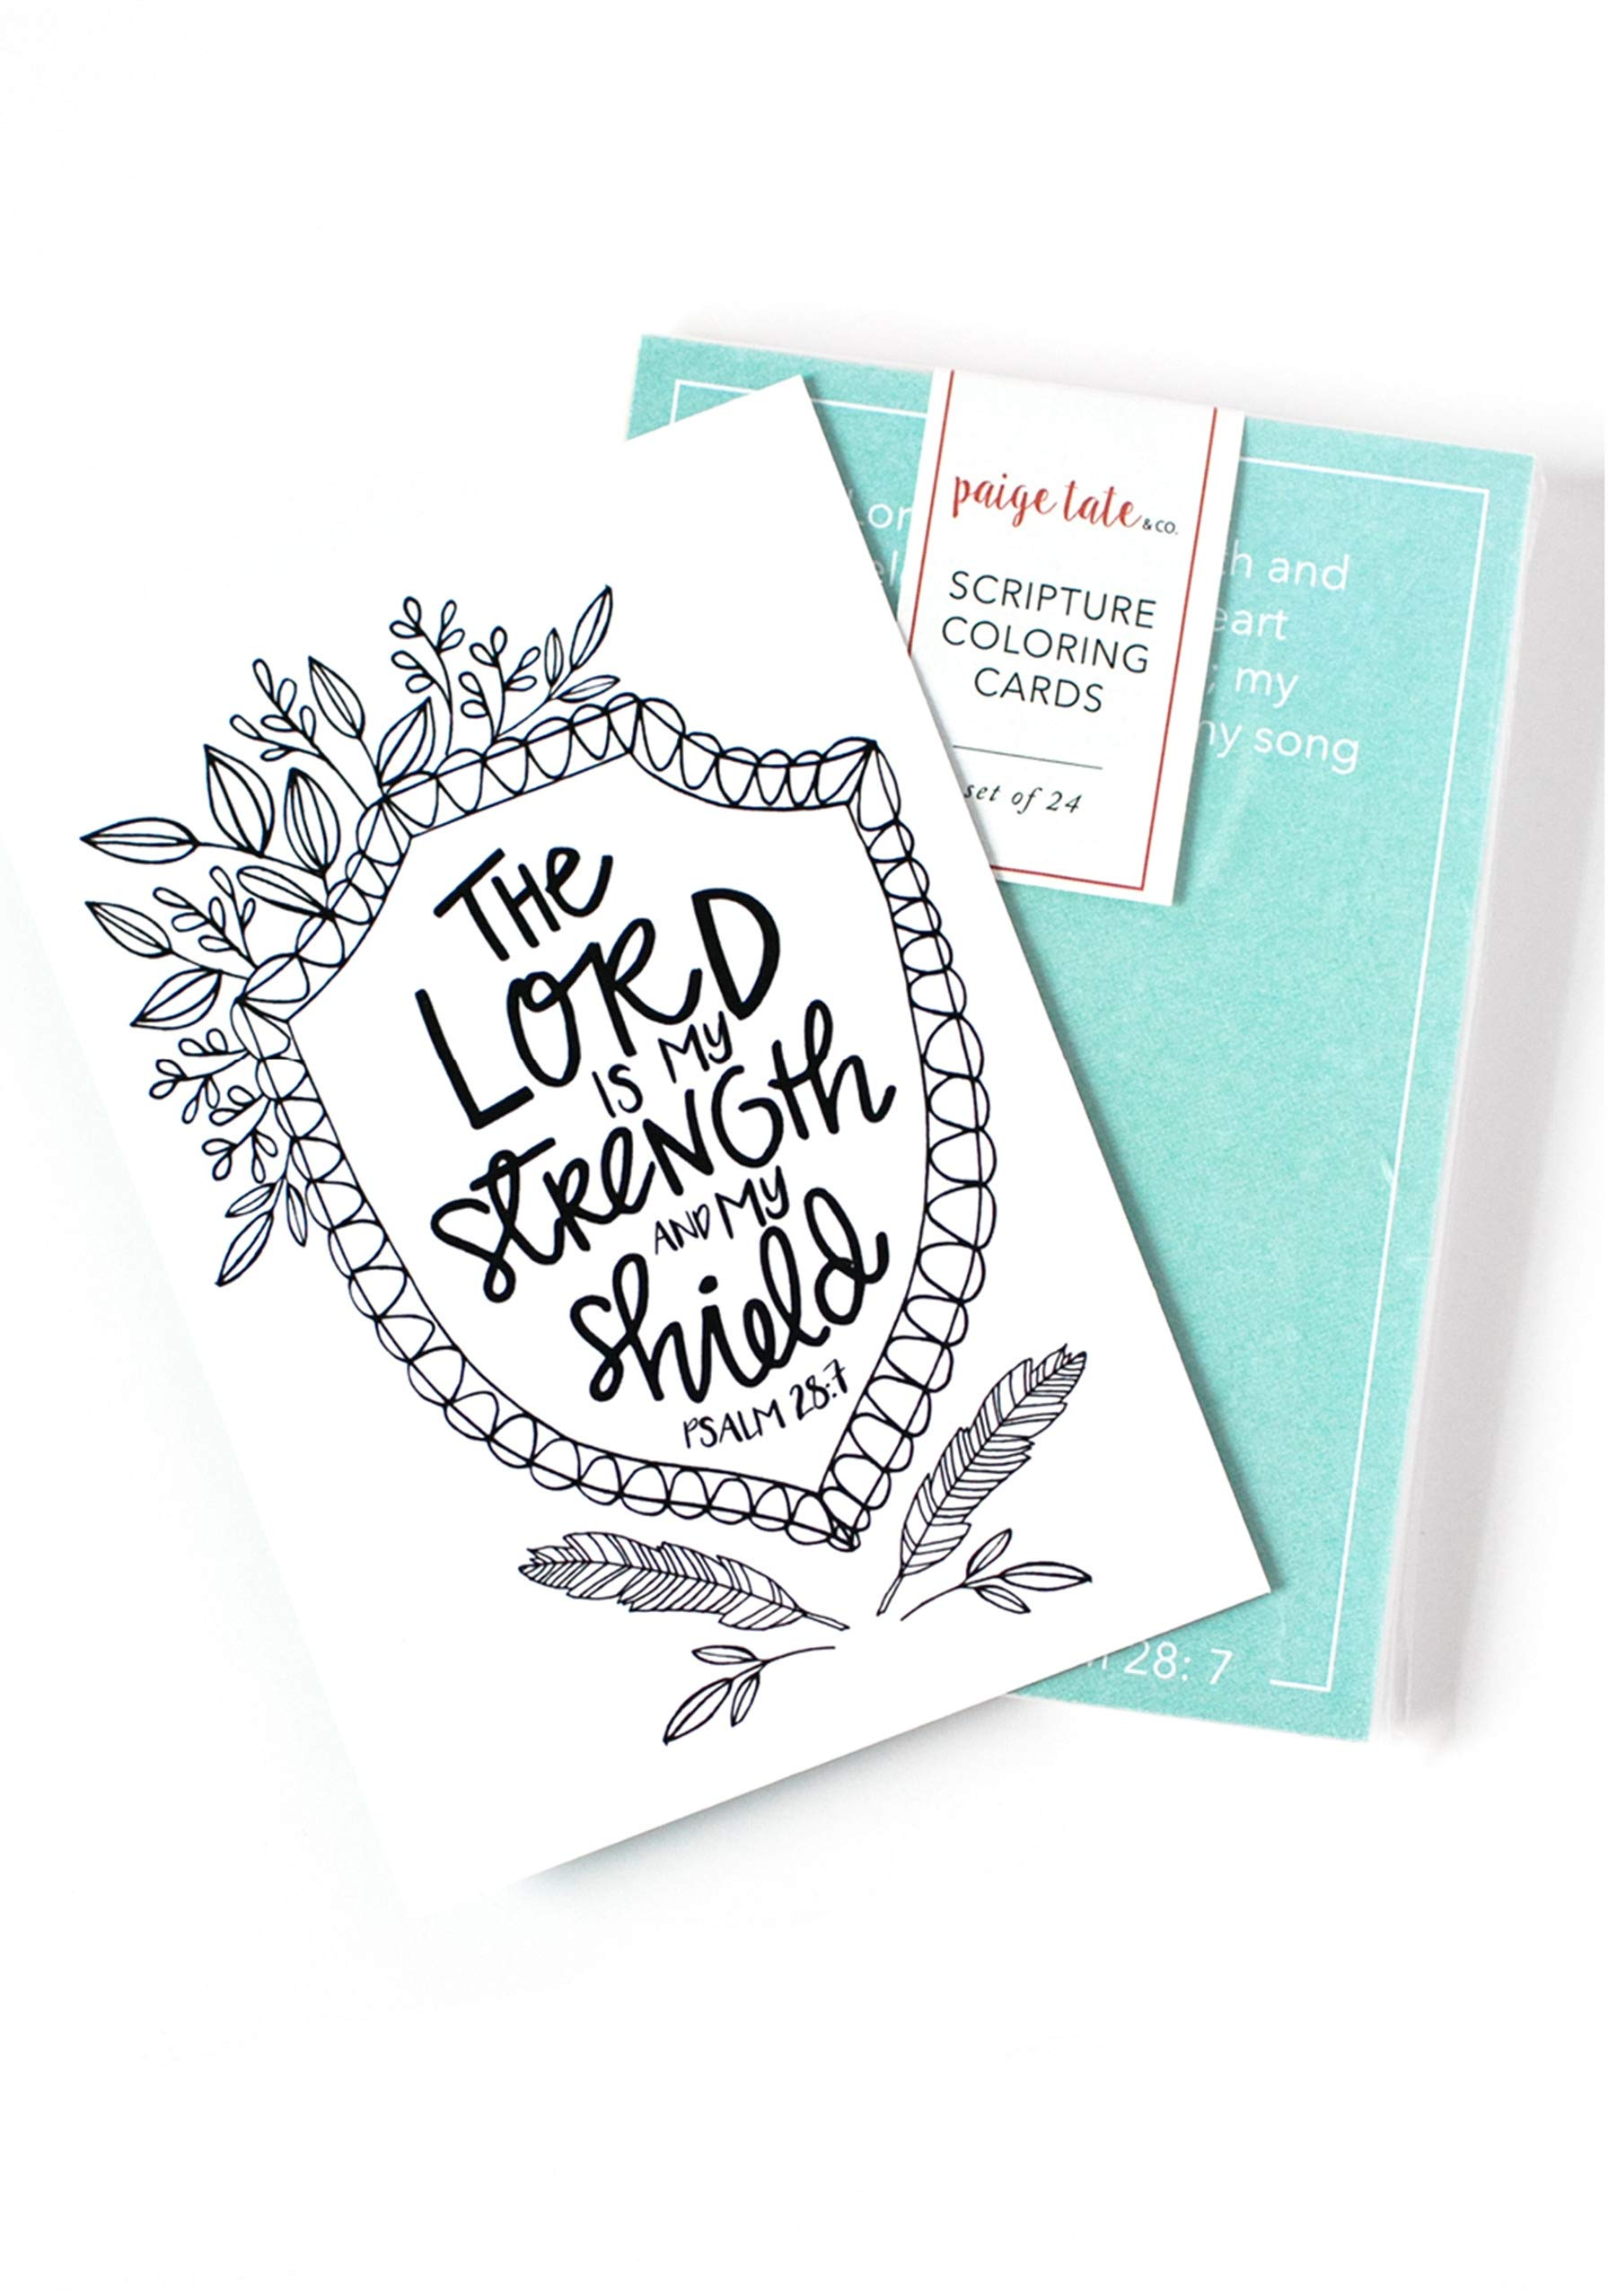 - Amazon.com: Scripture Coloring Cards: Color, Share, And Inspire